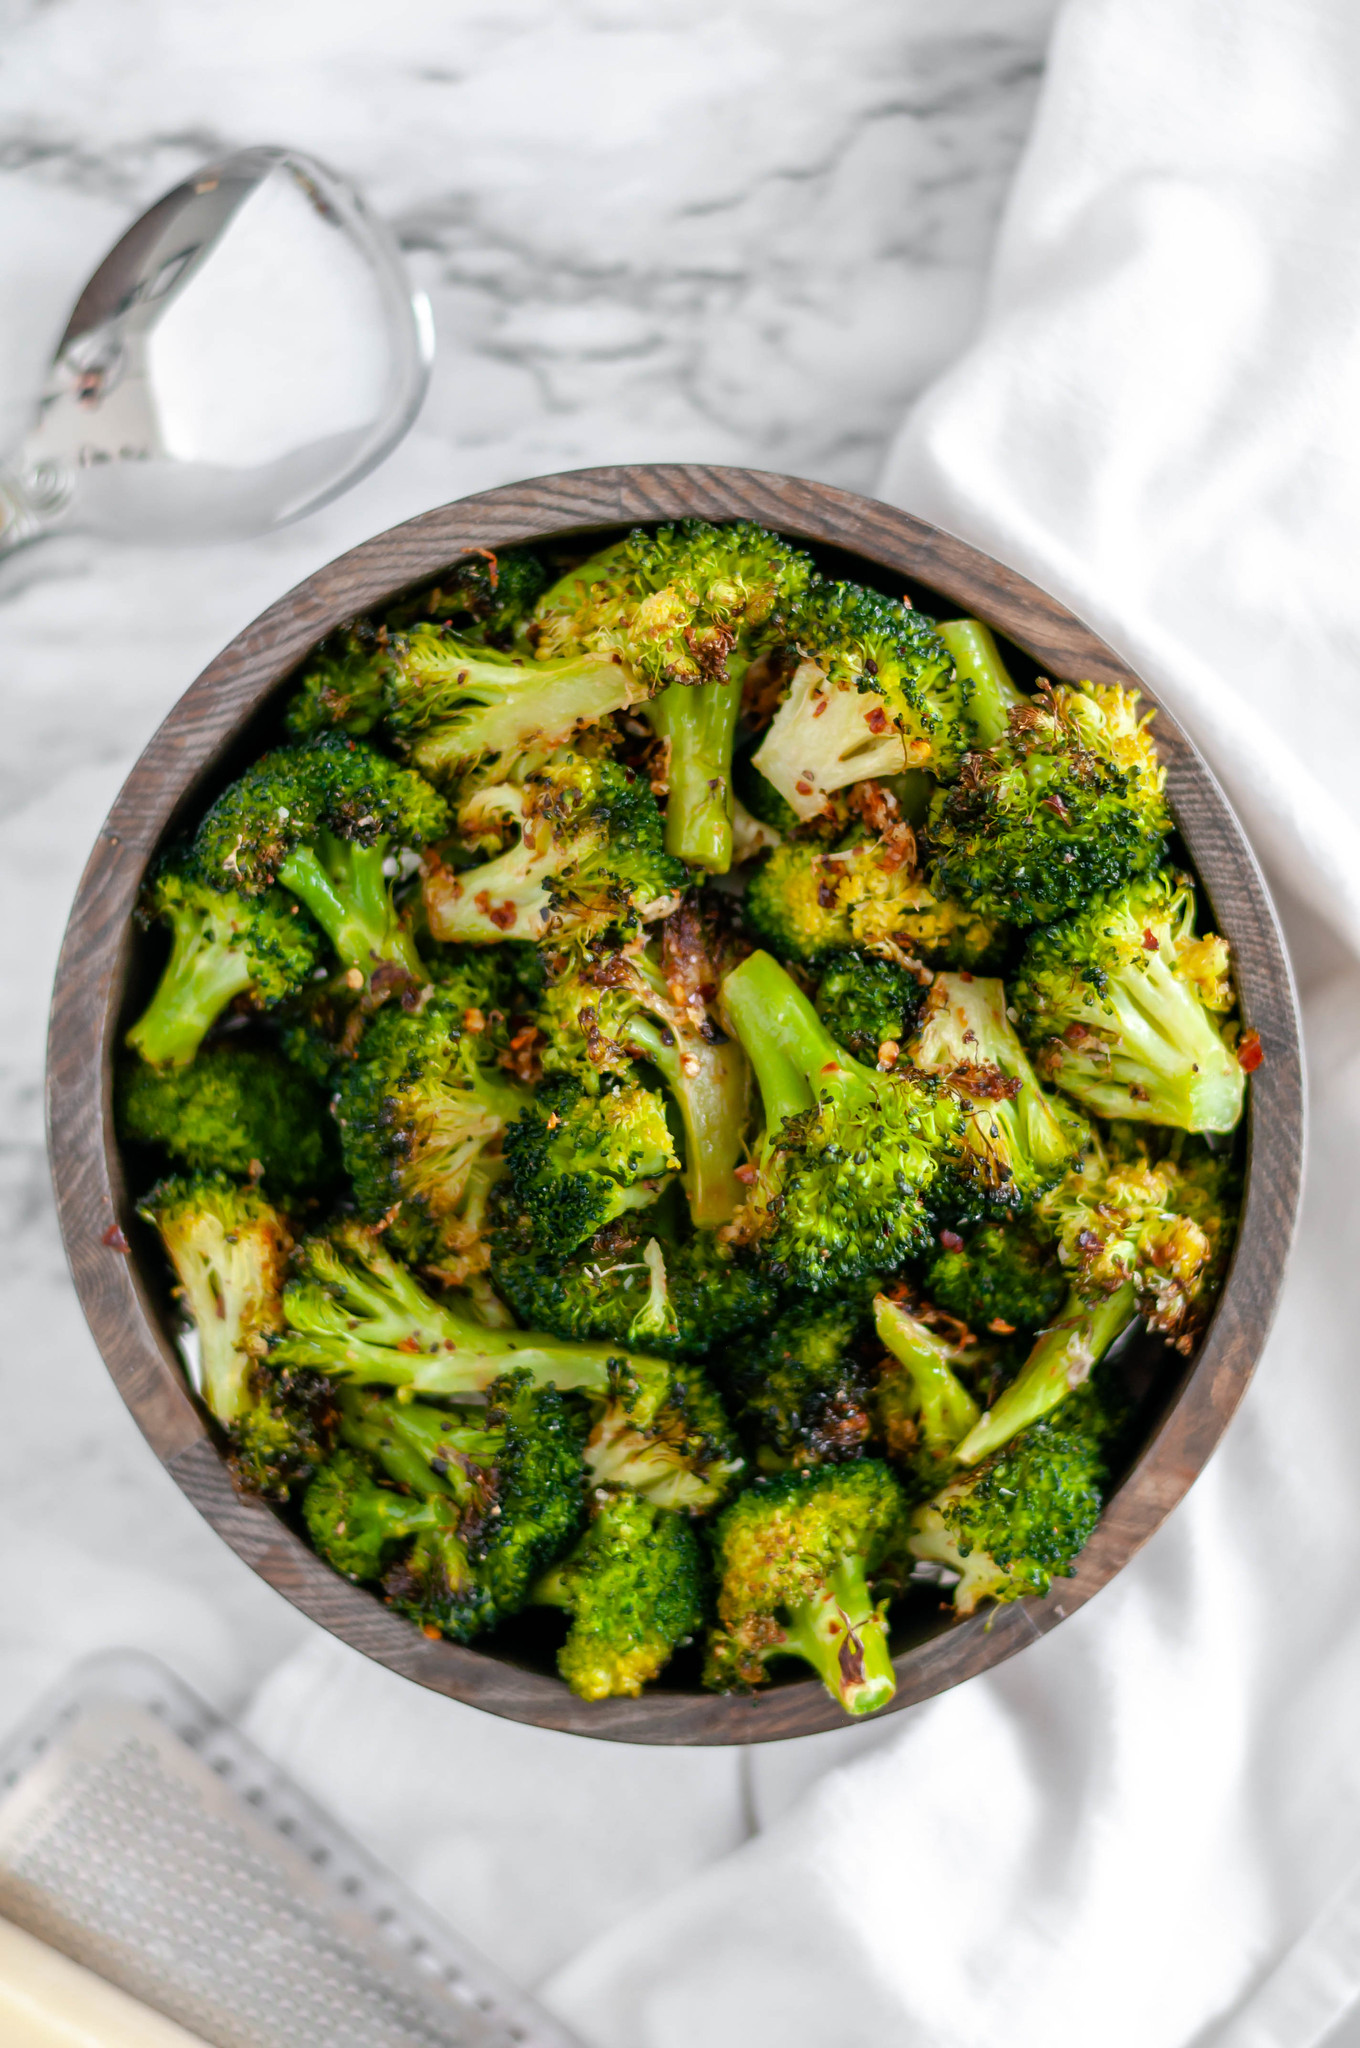 This Spicy Parmesan Roasted Broccoli is a great option for a weeknight side dish. Four simple ingredients are all you need to get this on the table.